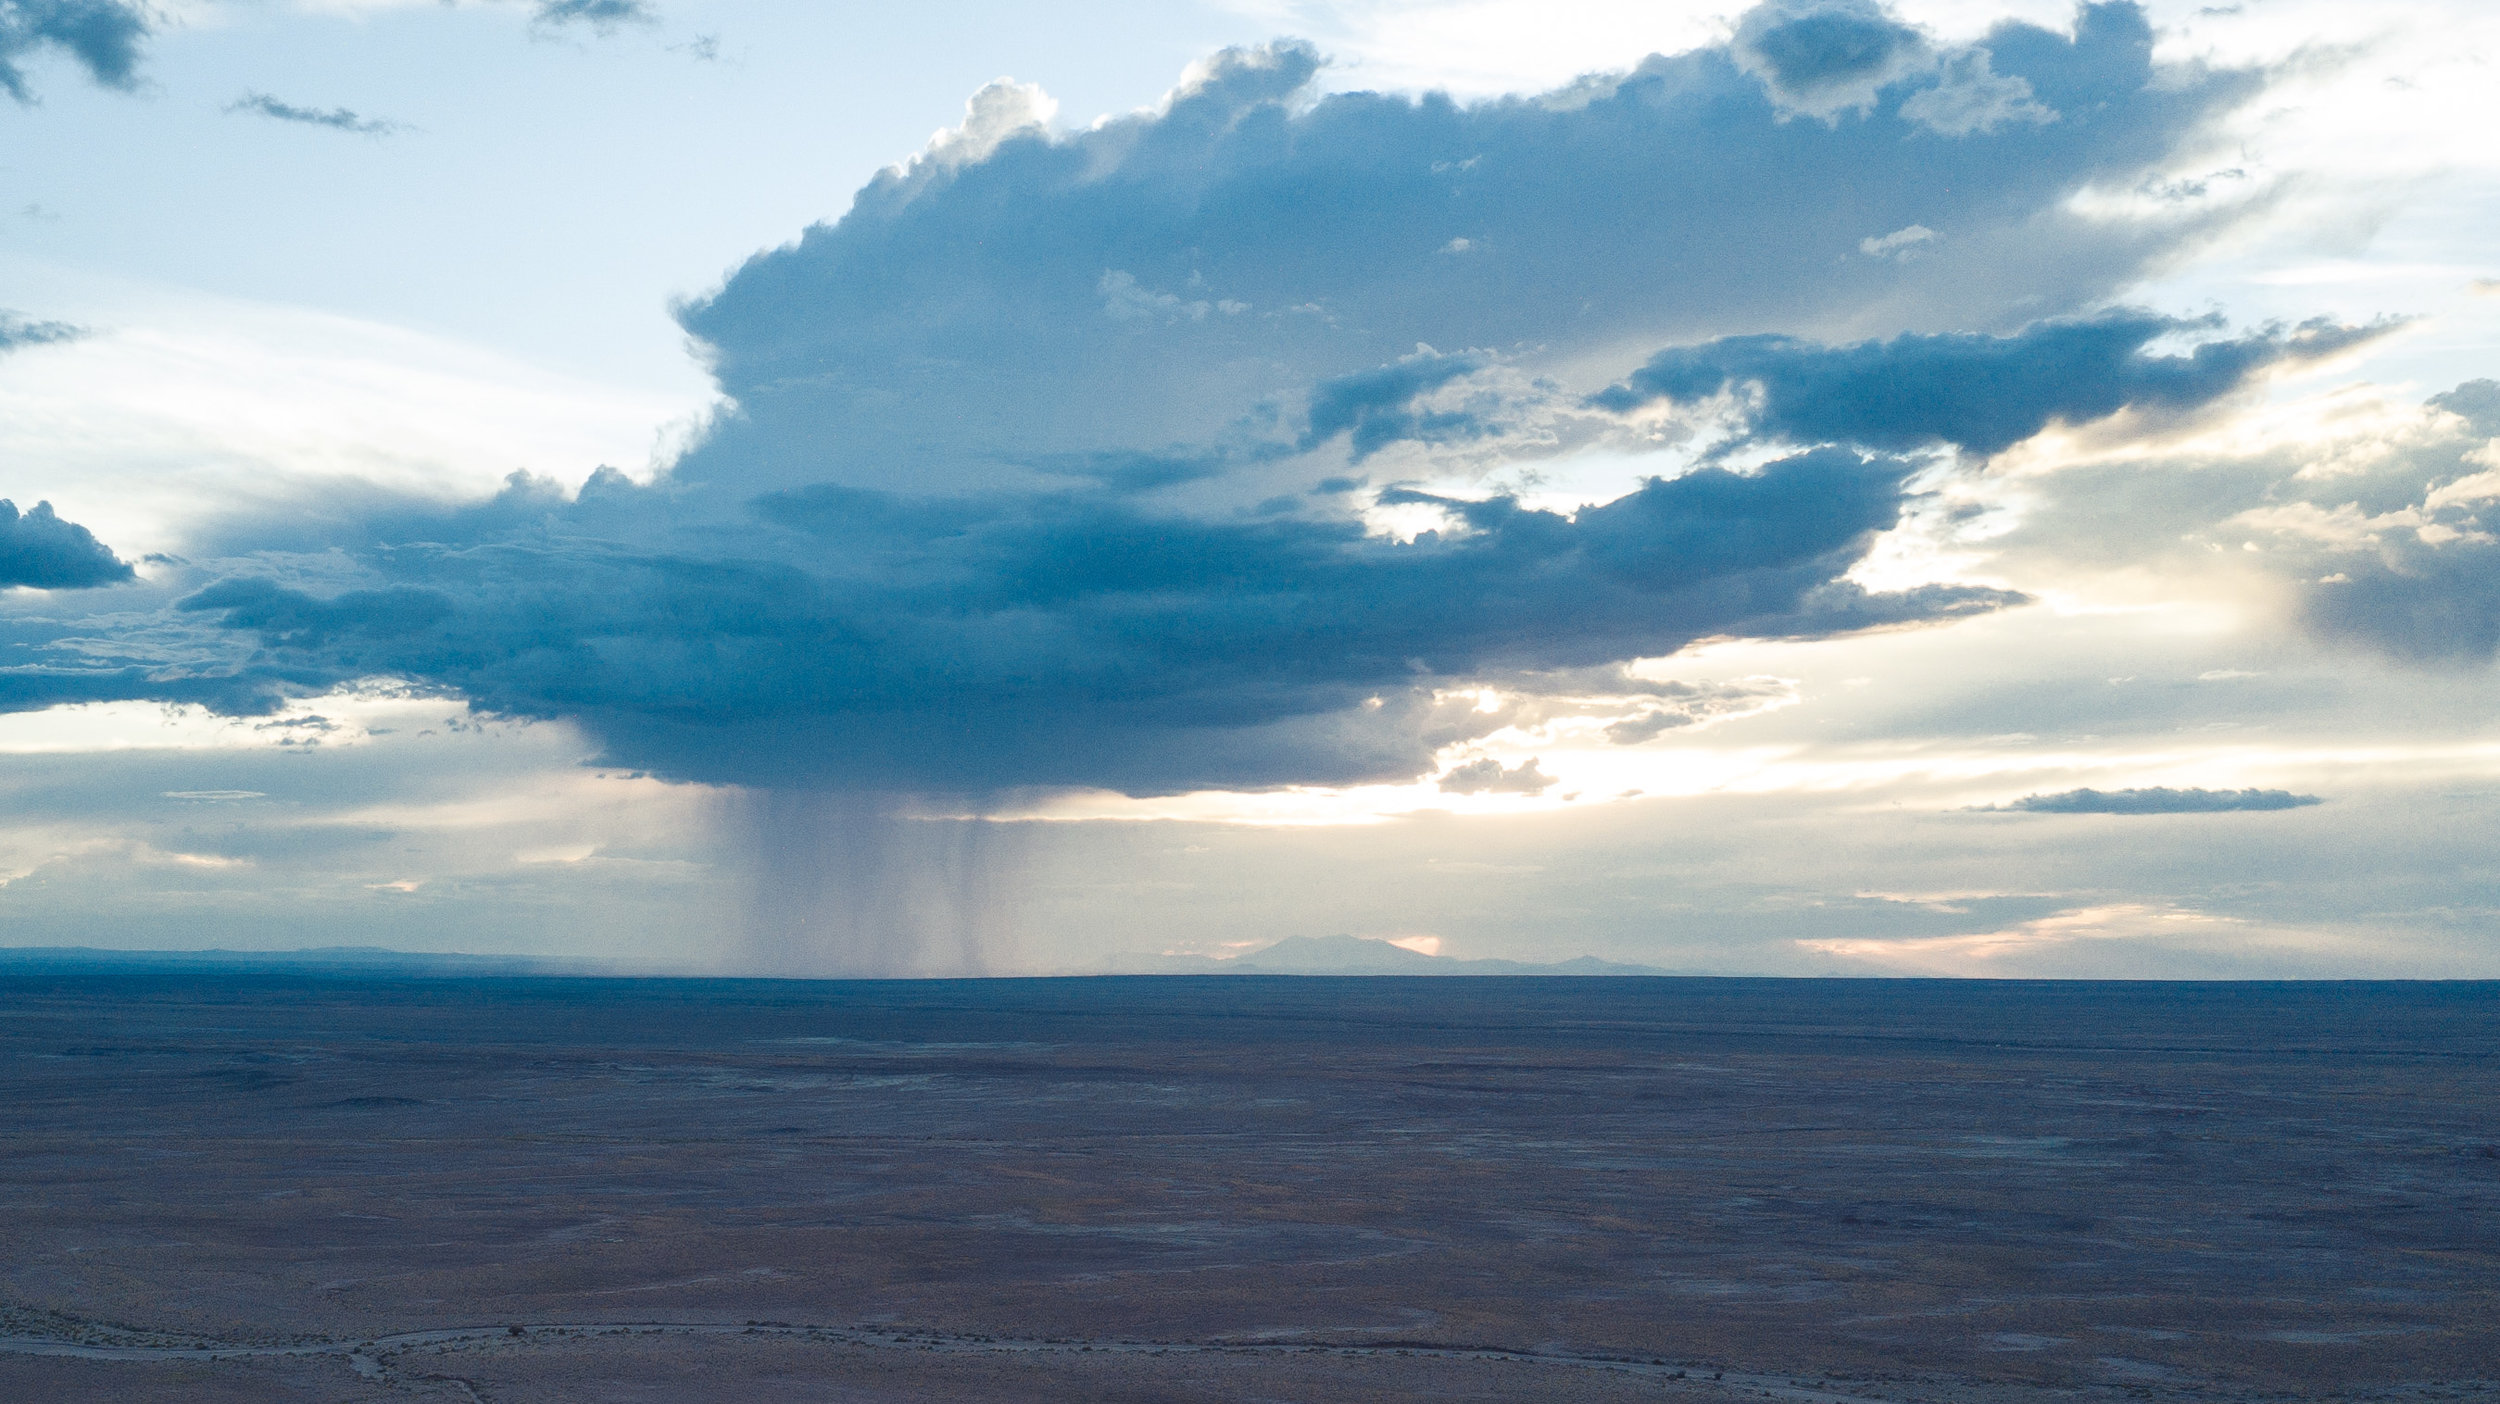 The peaks are barely visible along the horizon behind a large cumulonimbus cloud dumping moisture on the parched earth near Joseph City, AZ